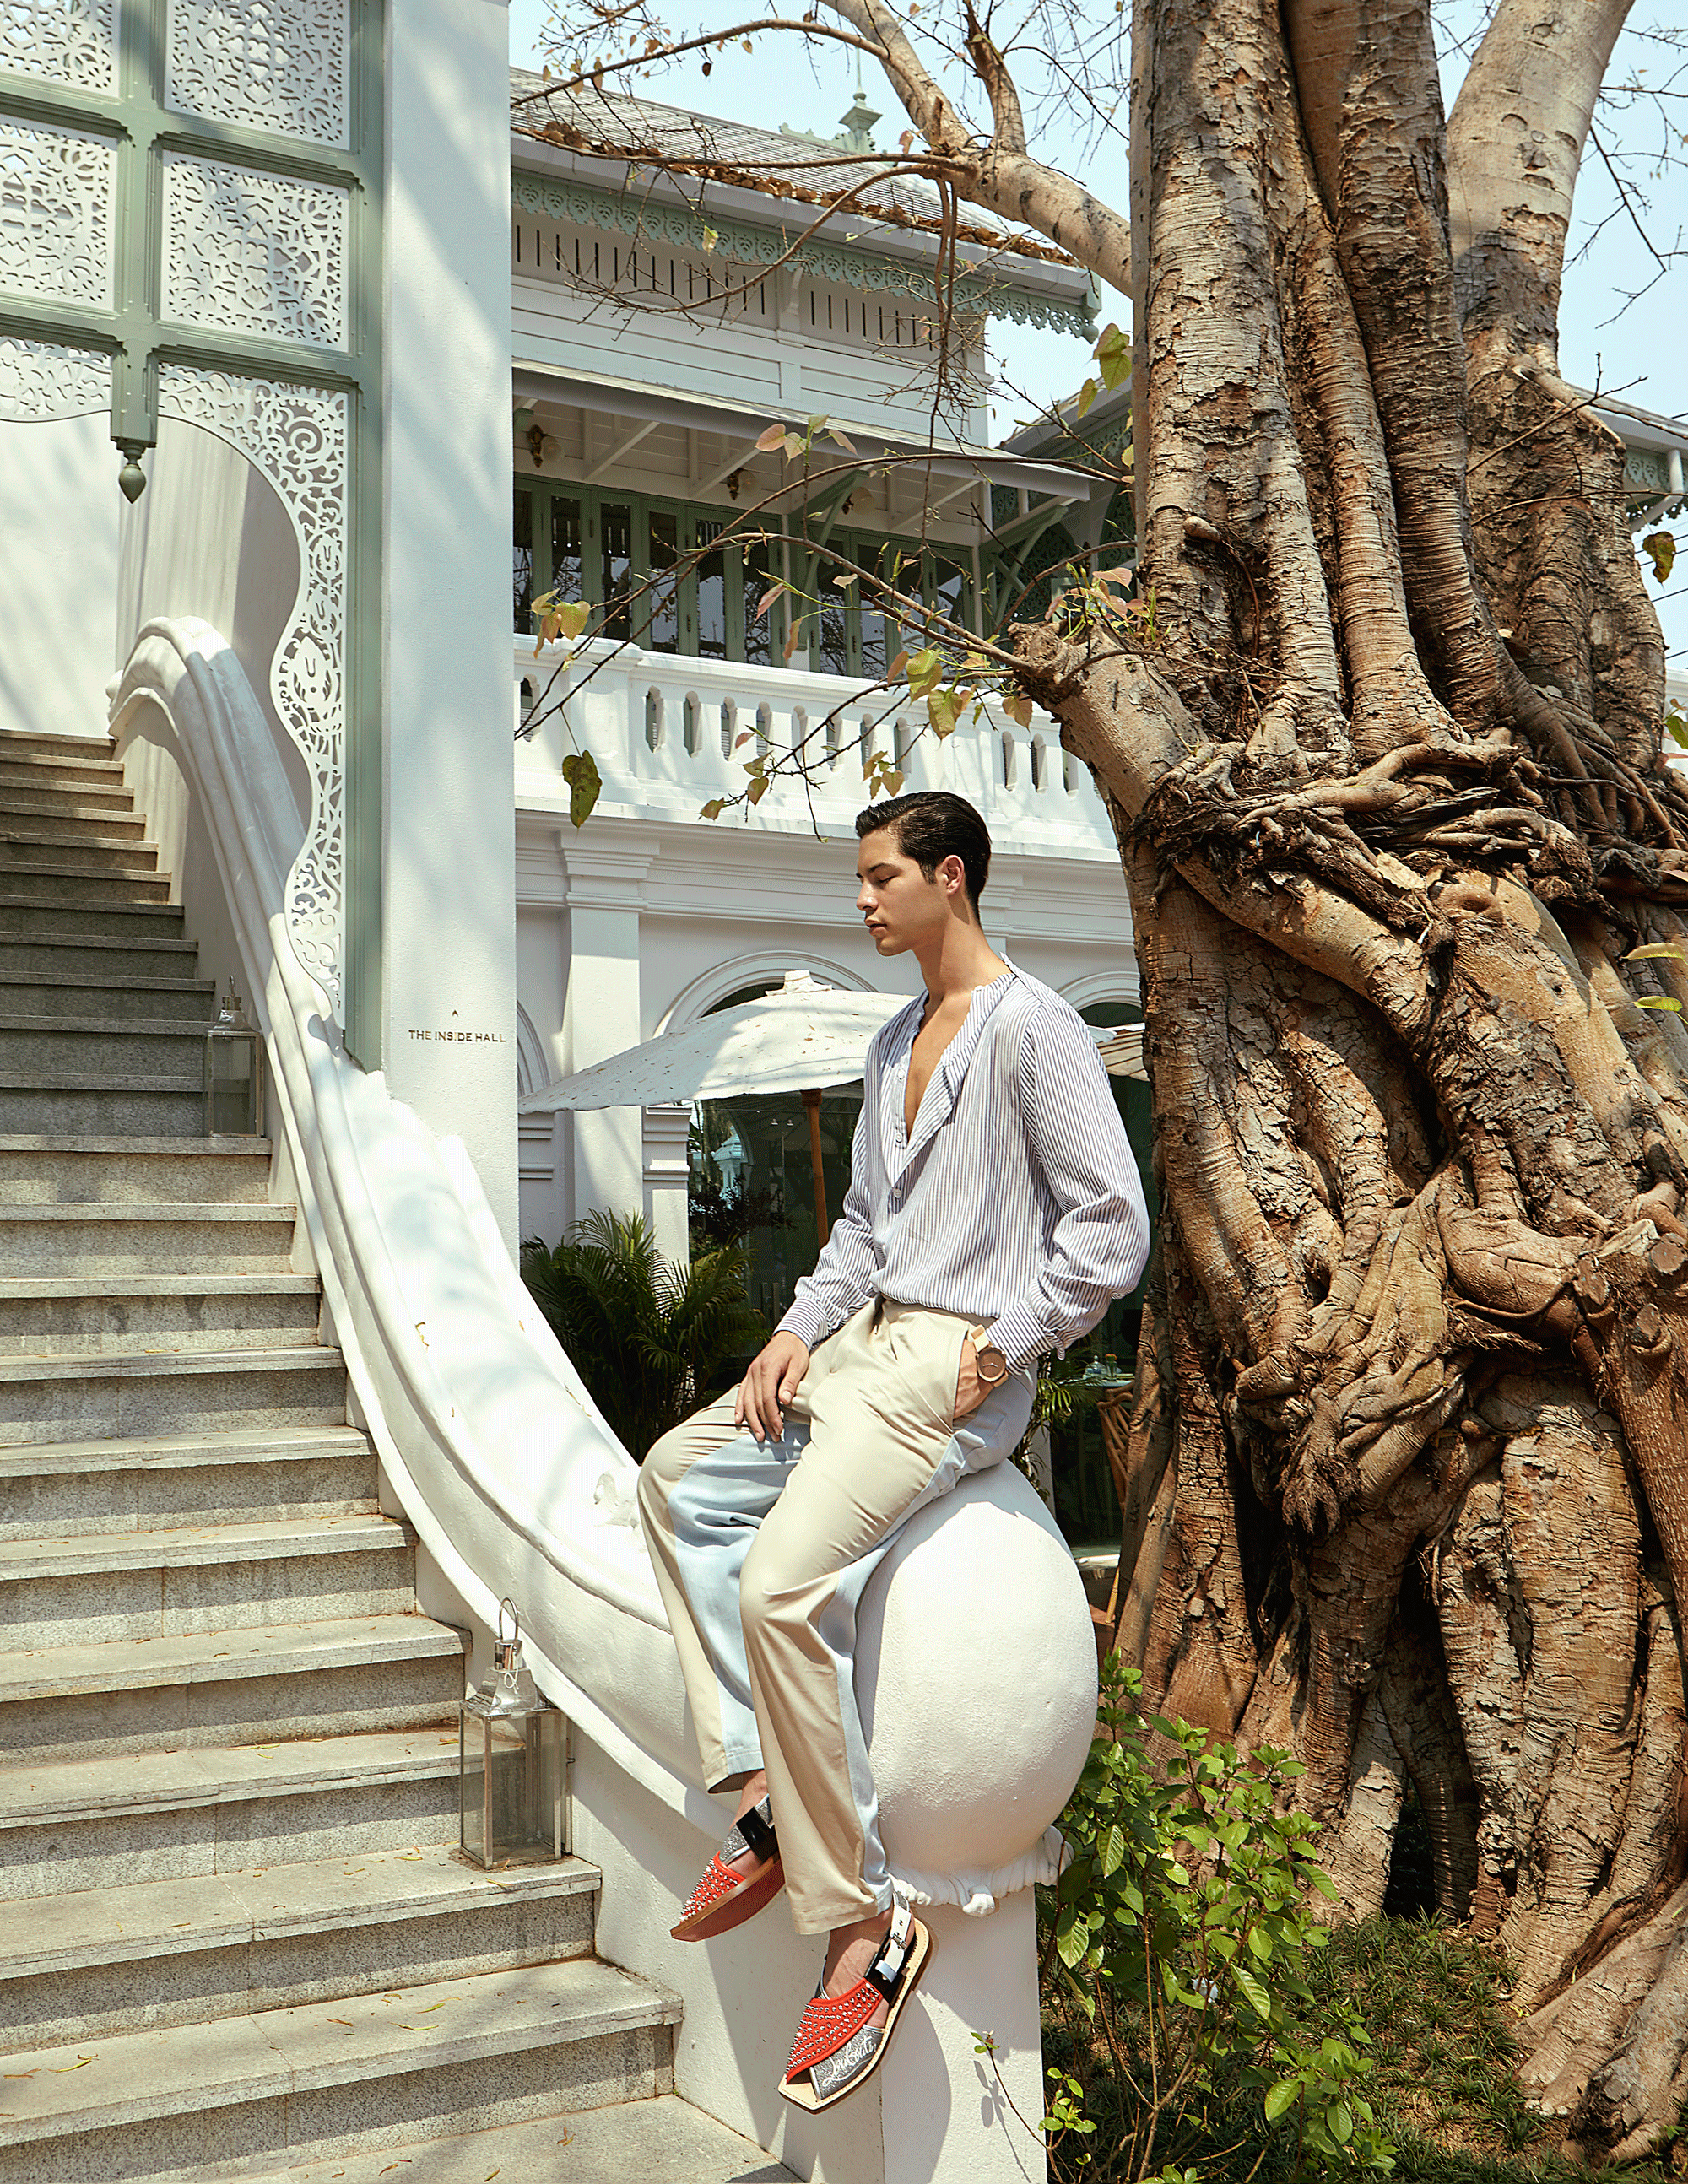 clothes : Leisure Projects / sandals : Christian Louboutin